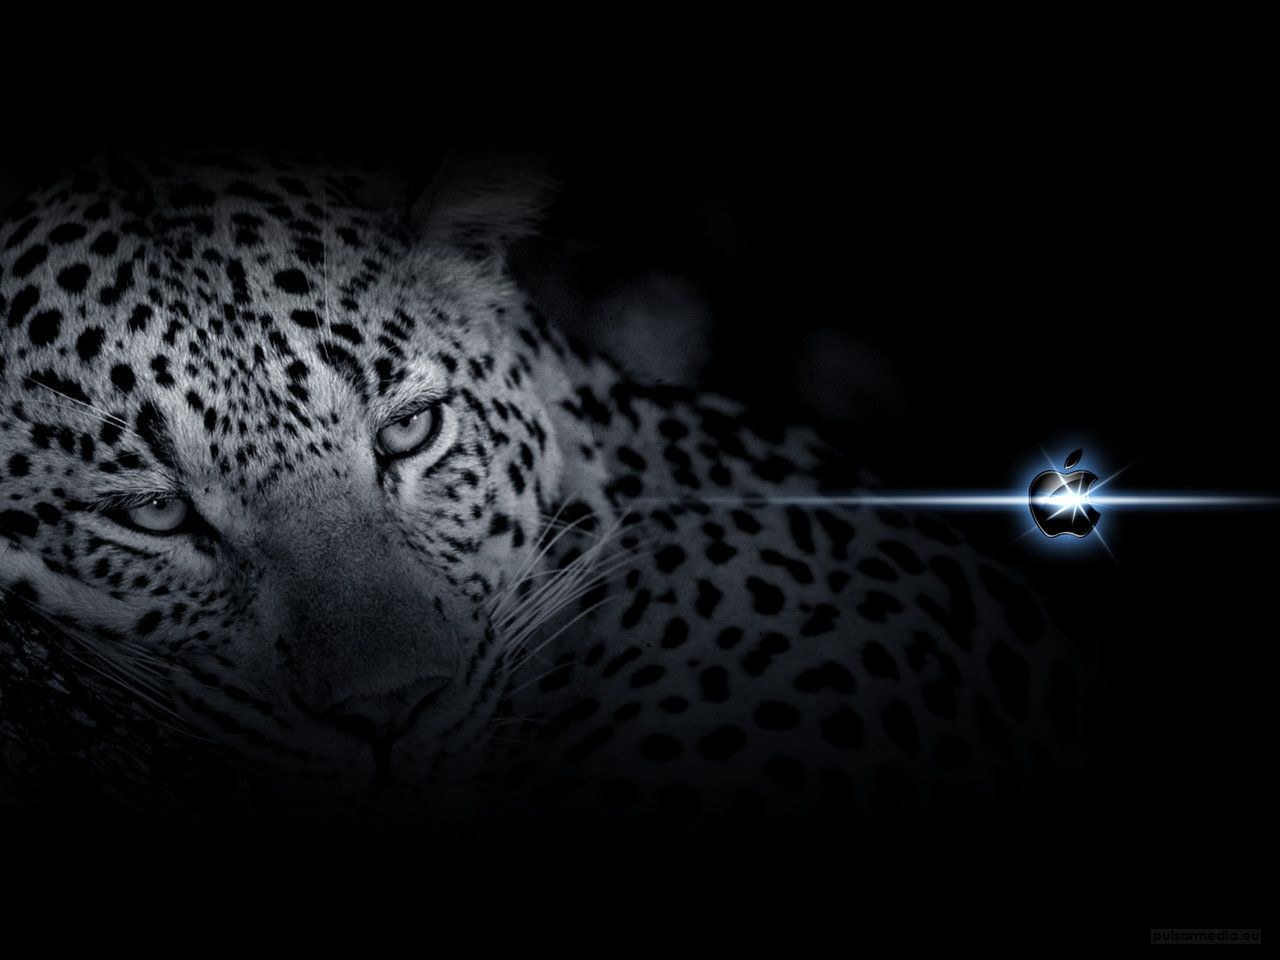 Good Wallpaper Mac Leopard - 89611176402409872f2dd9488e838986  Snapshot_18762.jpg